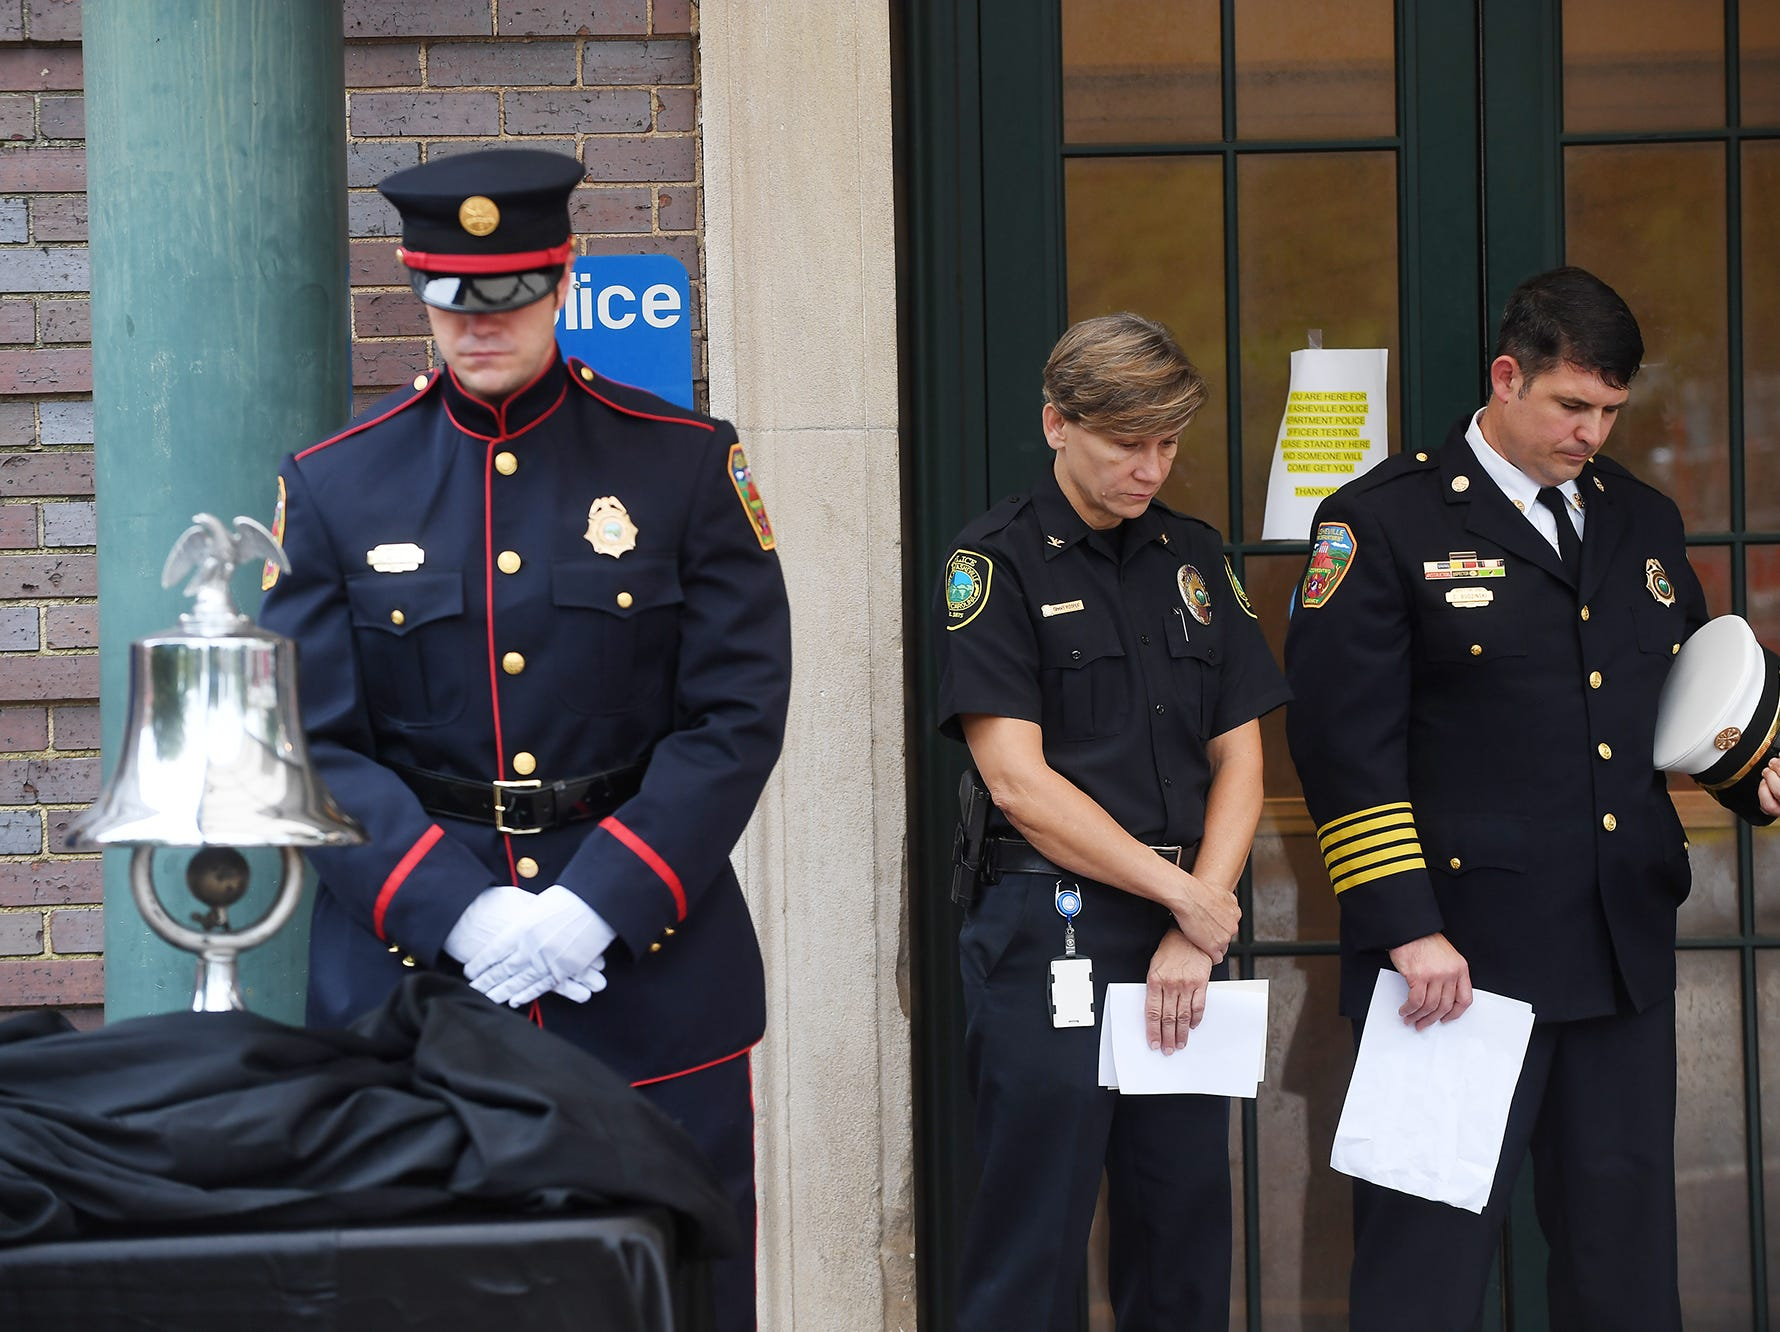 Asheville hosted a 9-11 remembrance ceremony at the City Municipal Building Sept. 11, 2018.